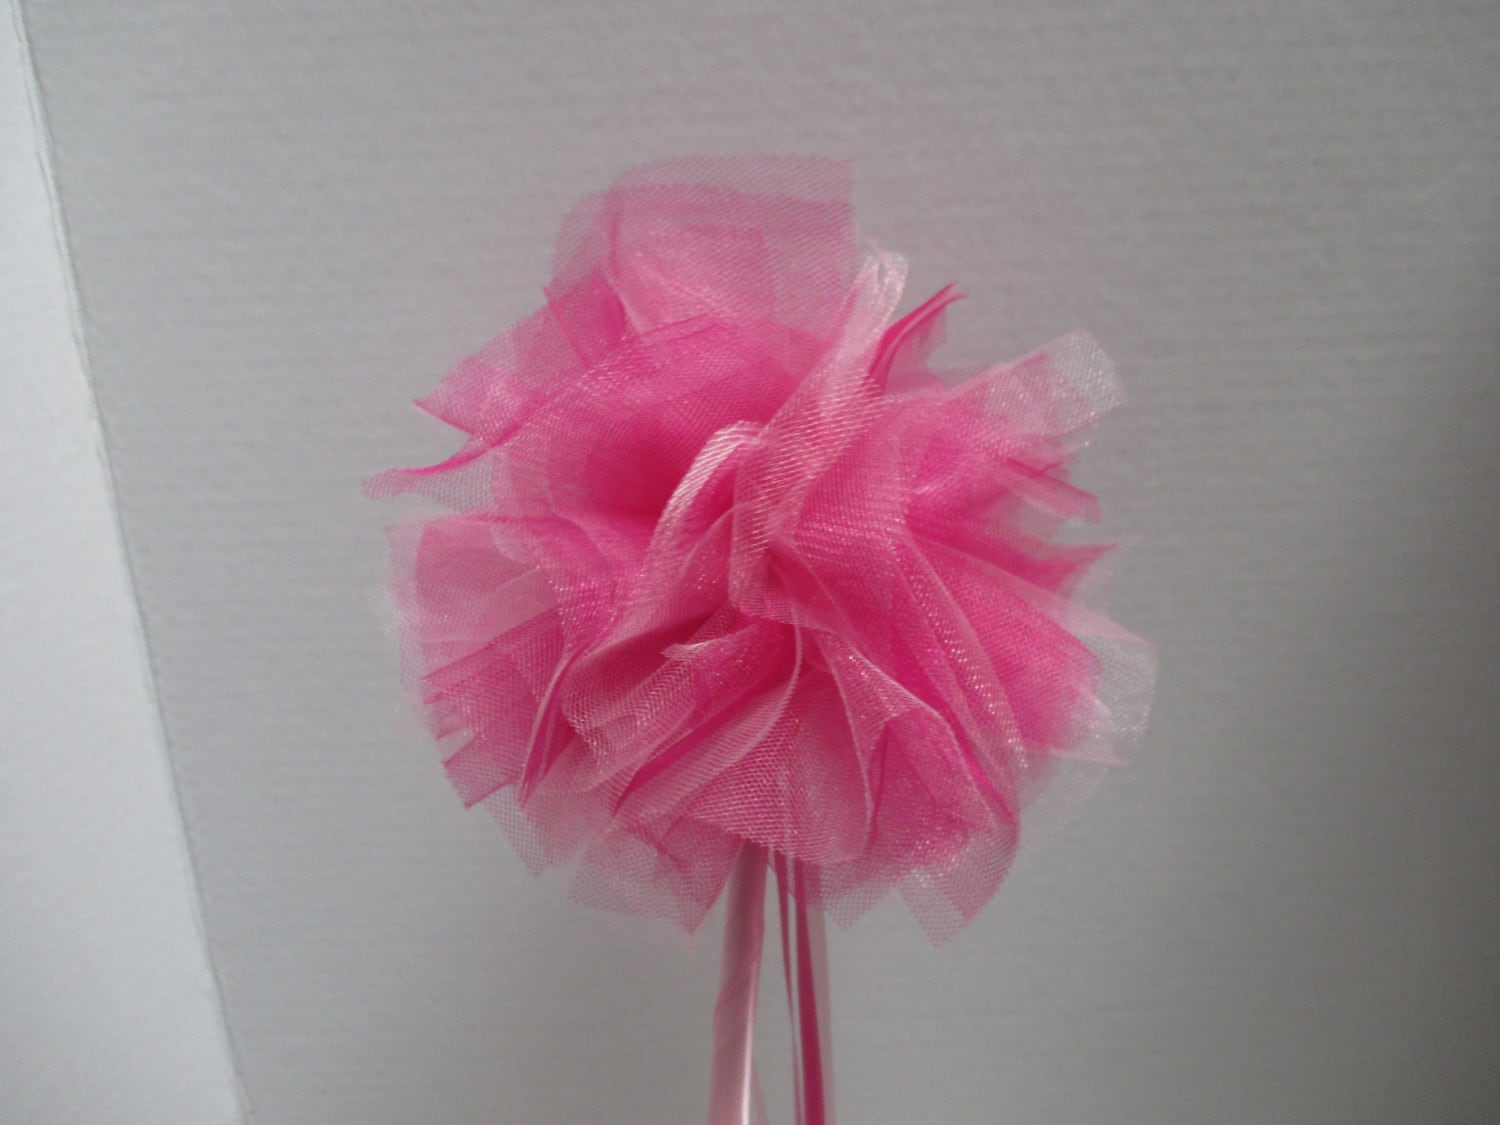 pink princess wand fairy wand party favors. Black Bedroom Furniture Sets. Home Design Ideas